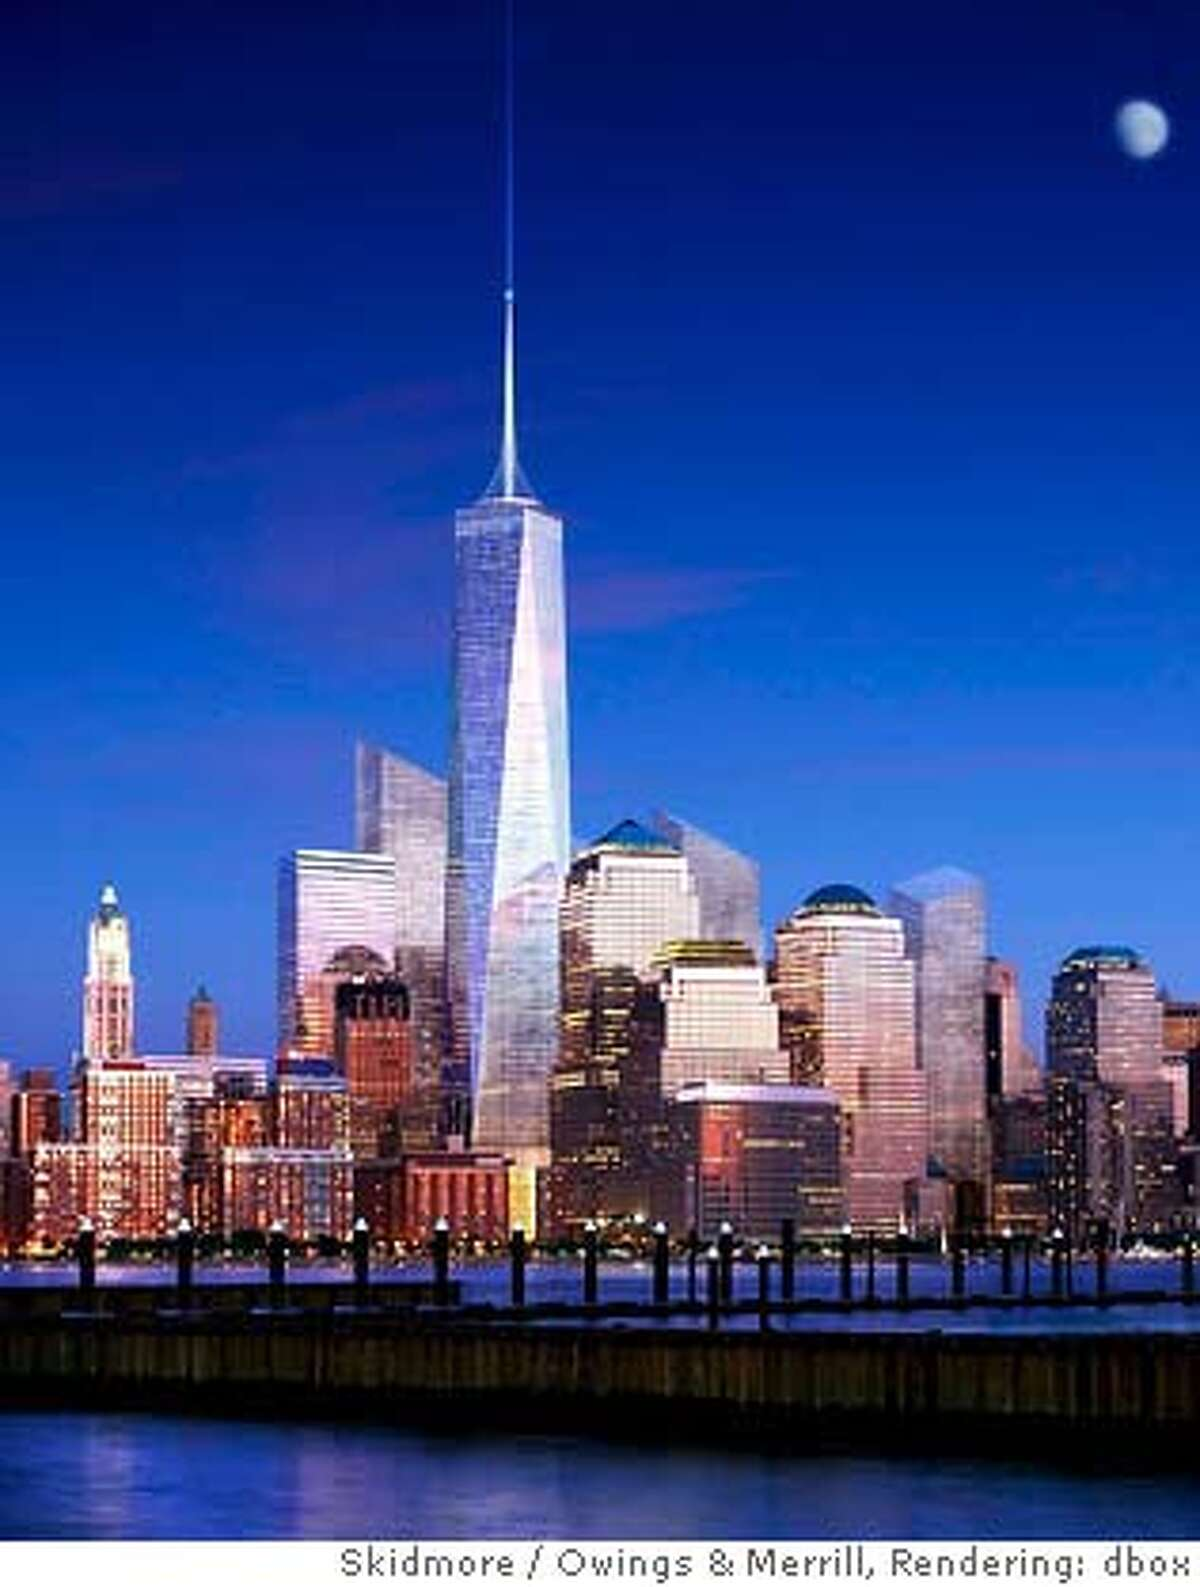 (NYT6) UNDATED -- June 29, 2005 -- WTC-TOWER -- With one eye on terrorism and another on what has already been lost to terrorists, New York officials unveiled a redesigned Freedom Tower on Wednesday, June 29, 2005, seen in this artist rendering. The tower evokes - both deliberately and coincidentally - the sky-piercing twins it is meant to replace. (Skidmore, Owings & Merrill) XNYZ